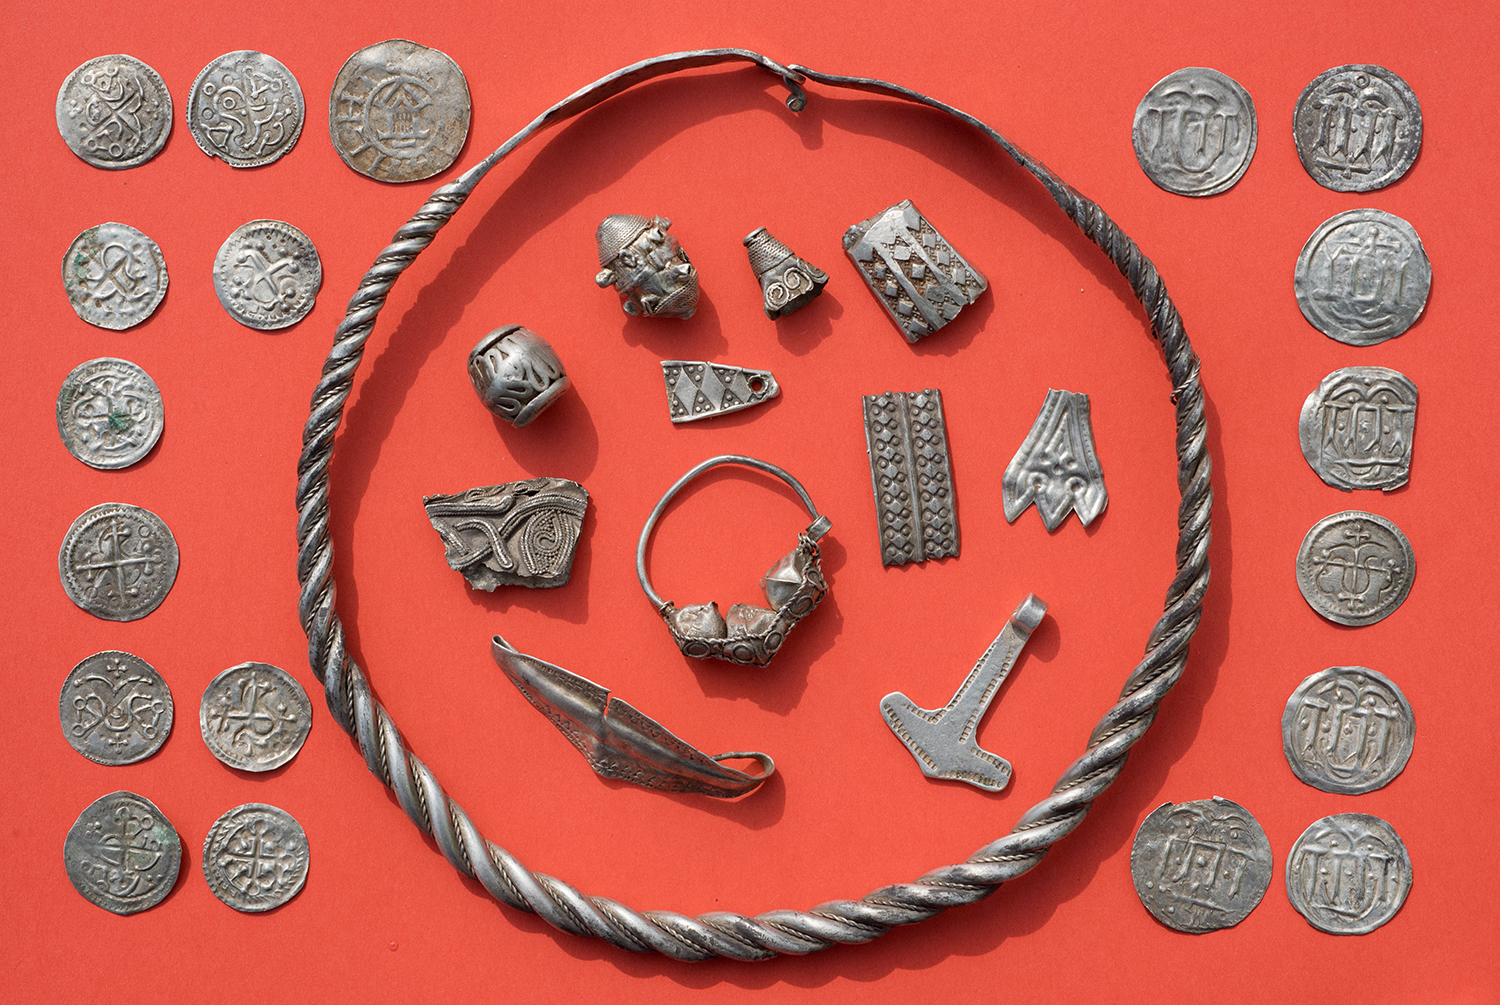 Detectorists find Danish king Harald Bluetooth's treasure on Baltic island